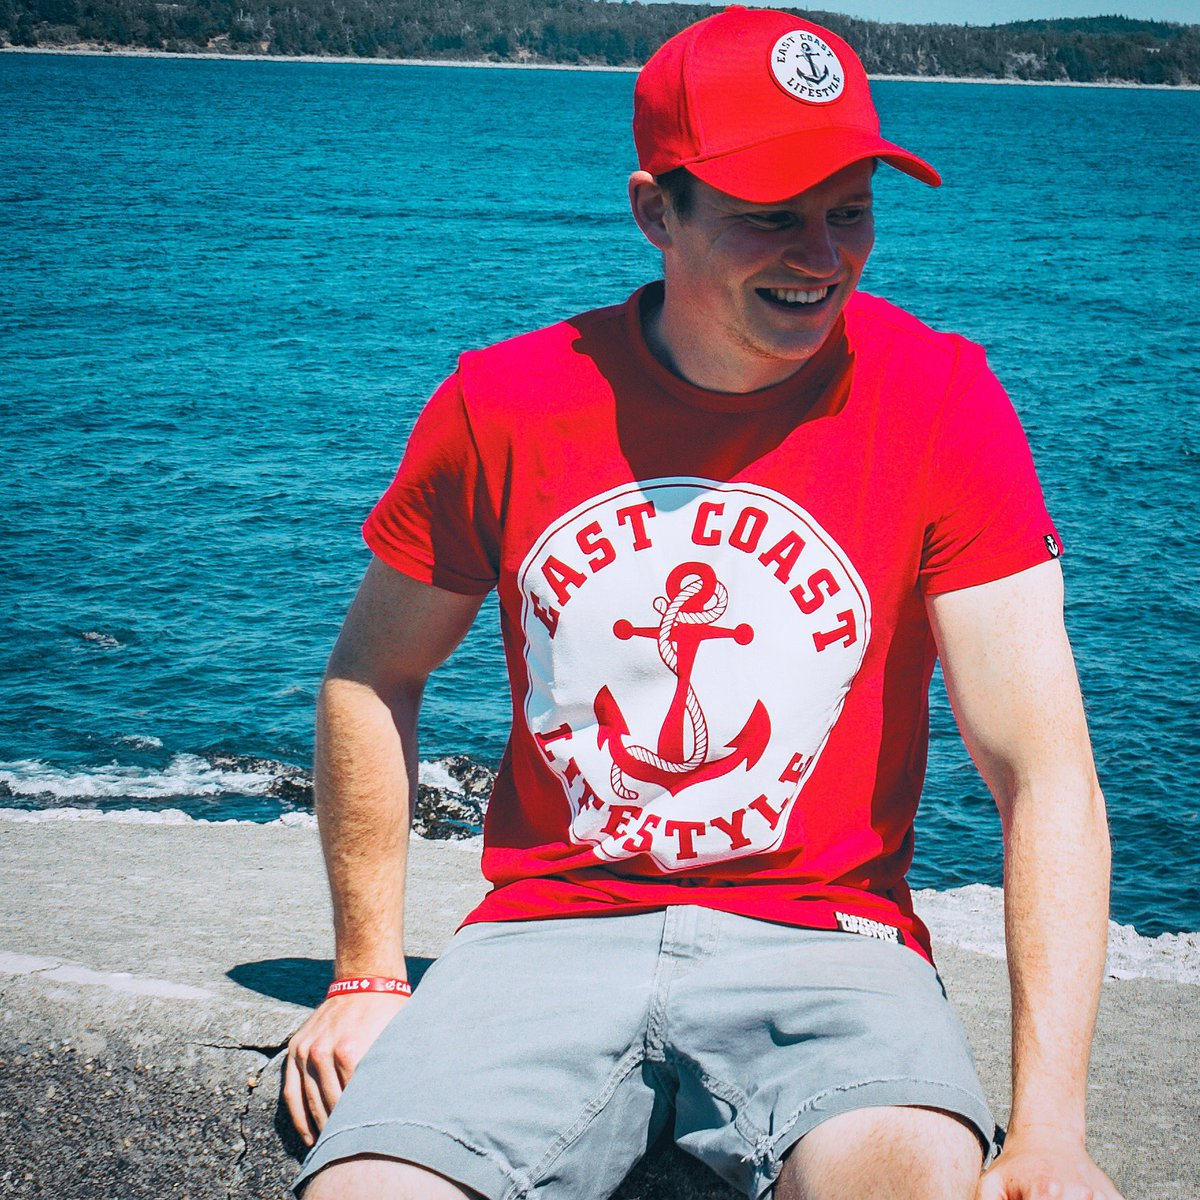 The next 150 orders over $50 will get these red hats for FREE as a gift from us!   Happy Canada Day   http:// EastCoastLifestyle.com  &nbsp;    #Canada150  <br>http://pic.twitter.com/zYJlz3yqwF